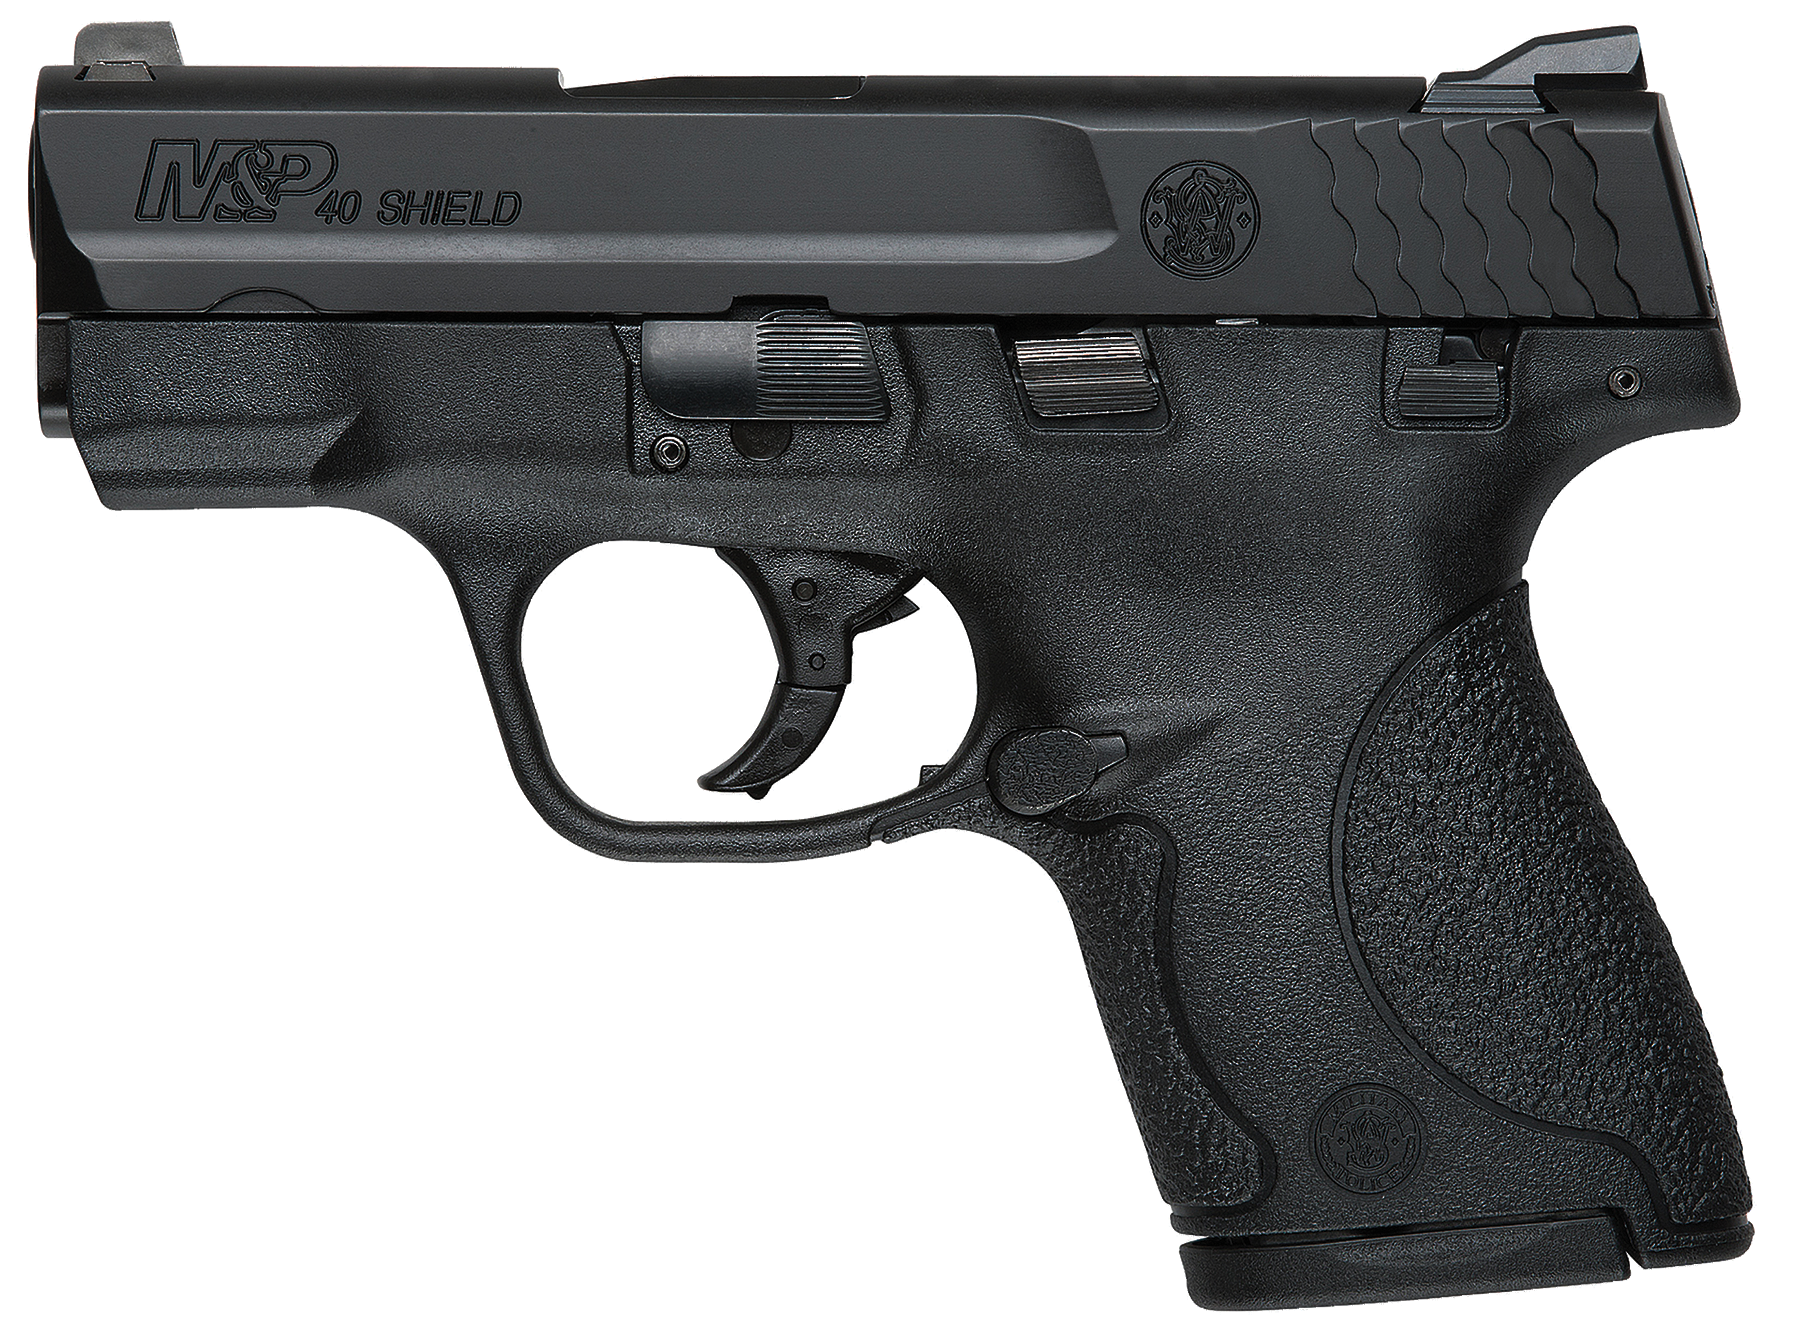 S&W® M&P®40 Shield™ Pistol - .40 S&W 7+1/6+1 - Black